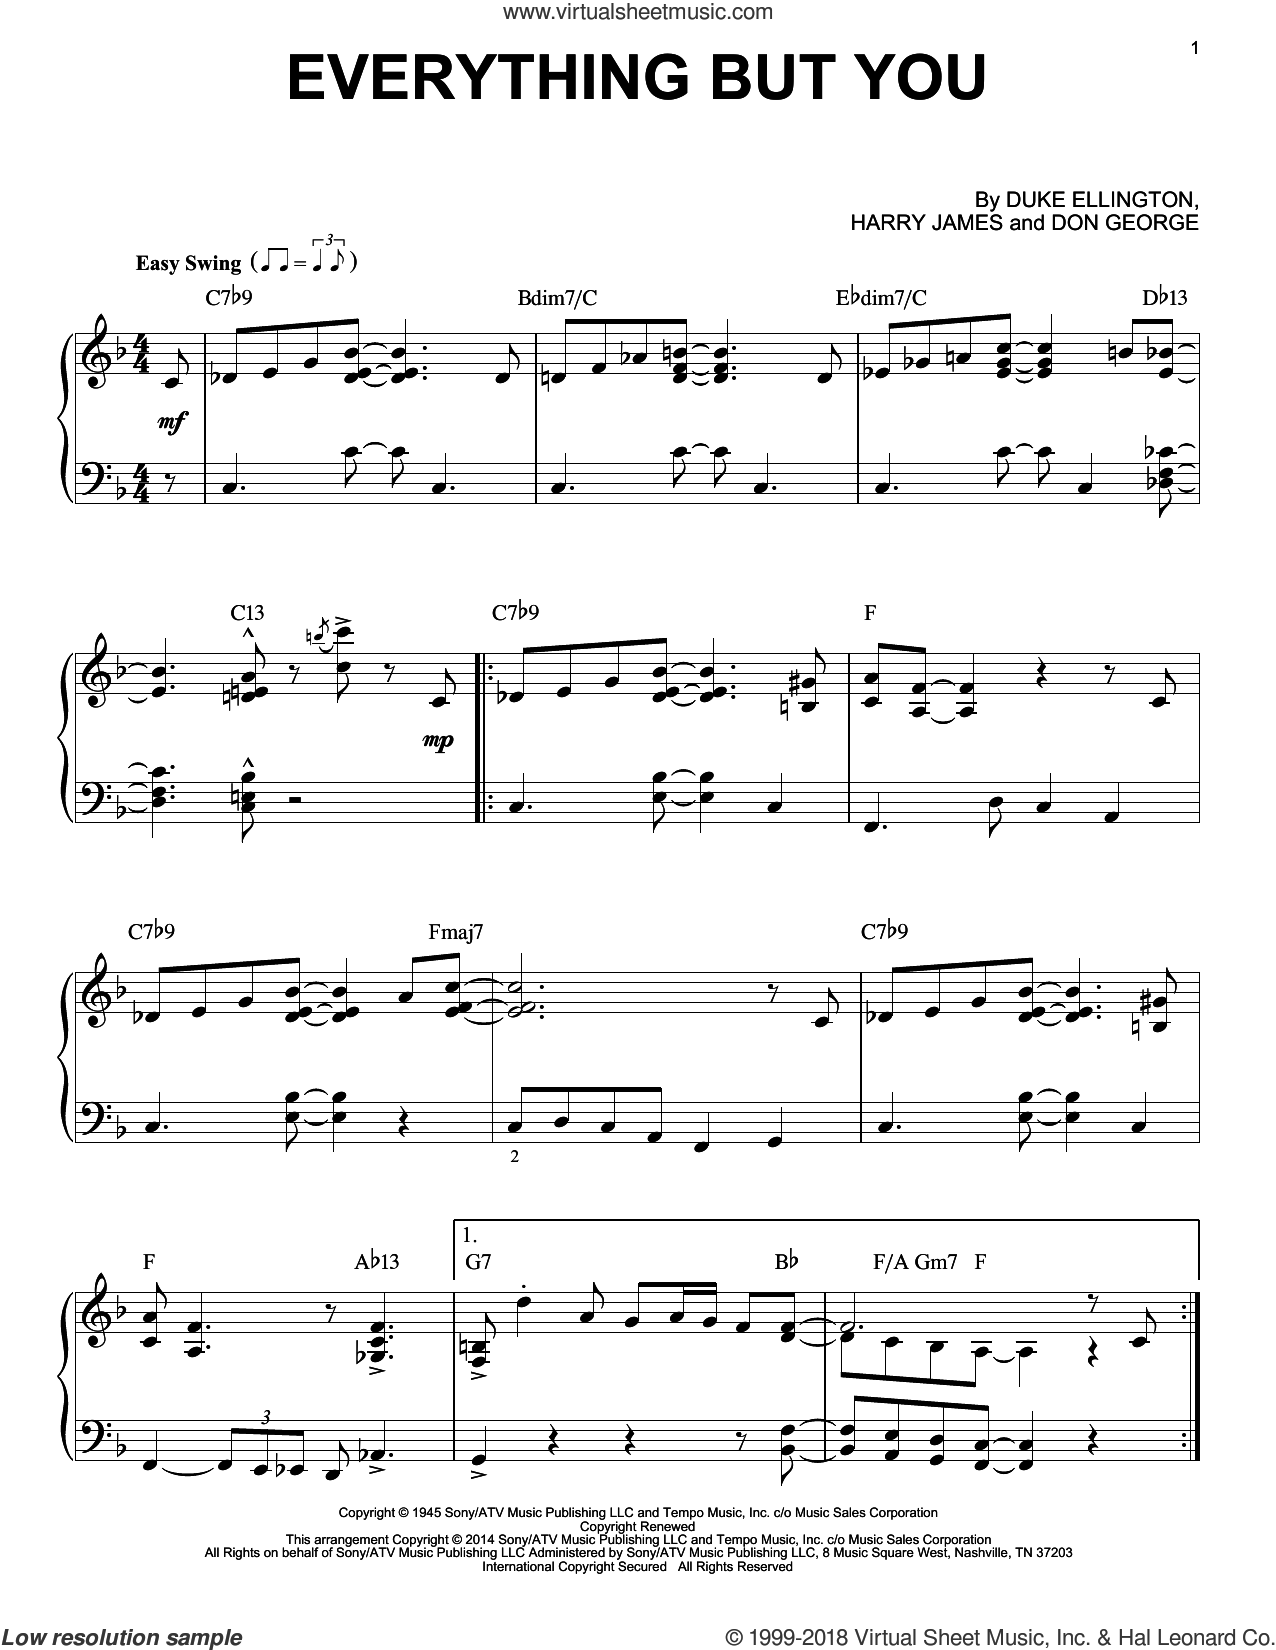 Everything But You sheet music for piano solo by Harry James